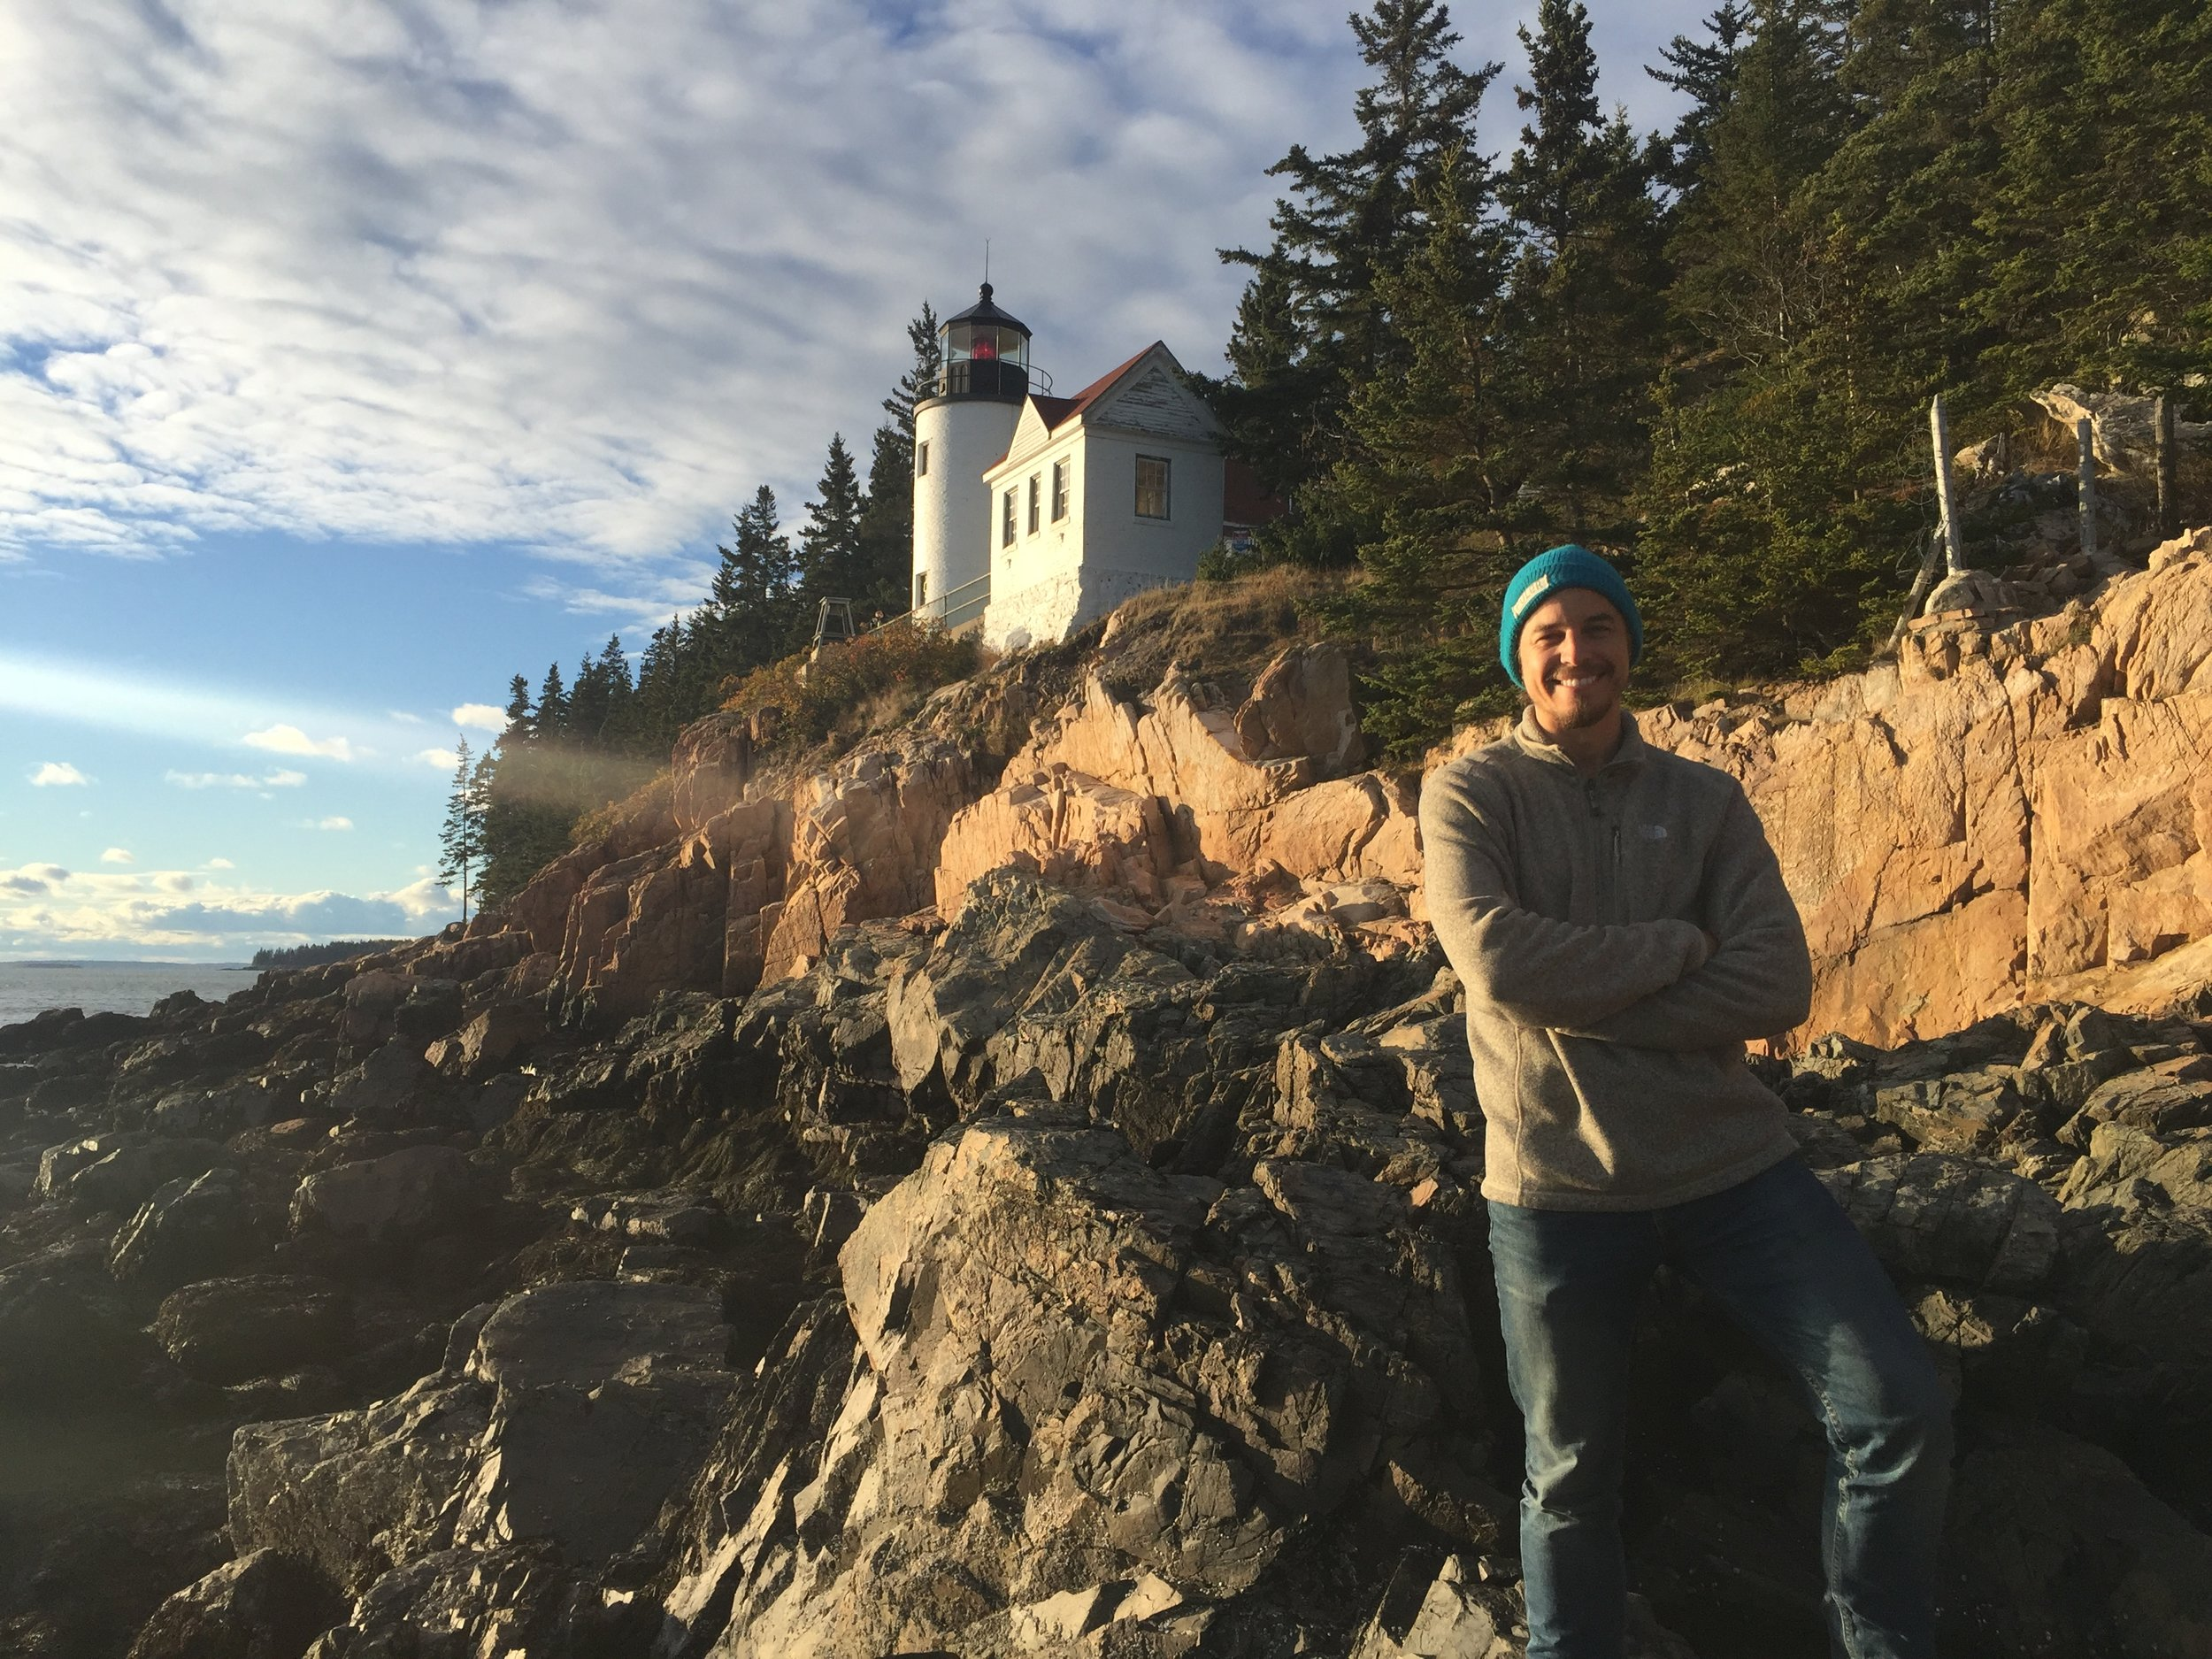 Out shooting the Bass Harbor lighthouse